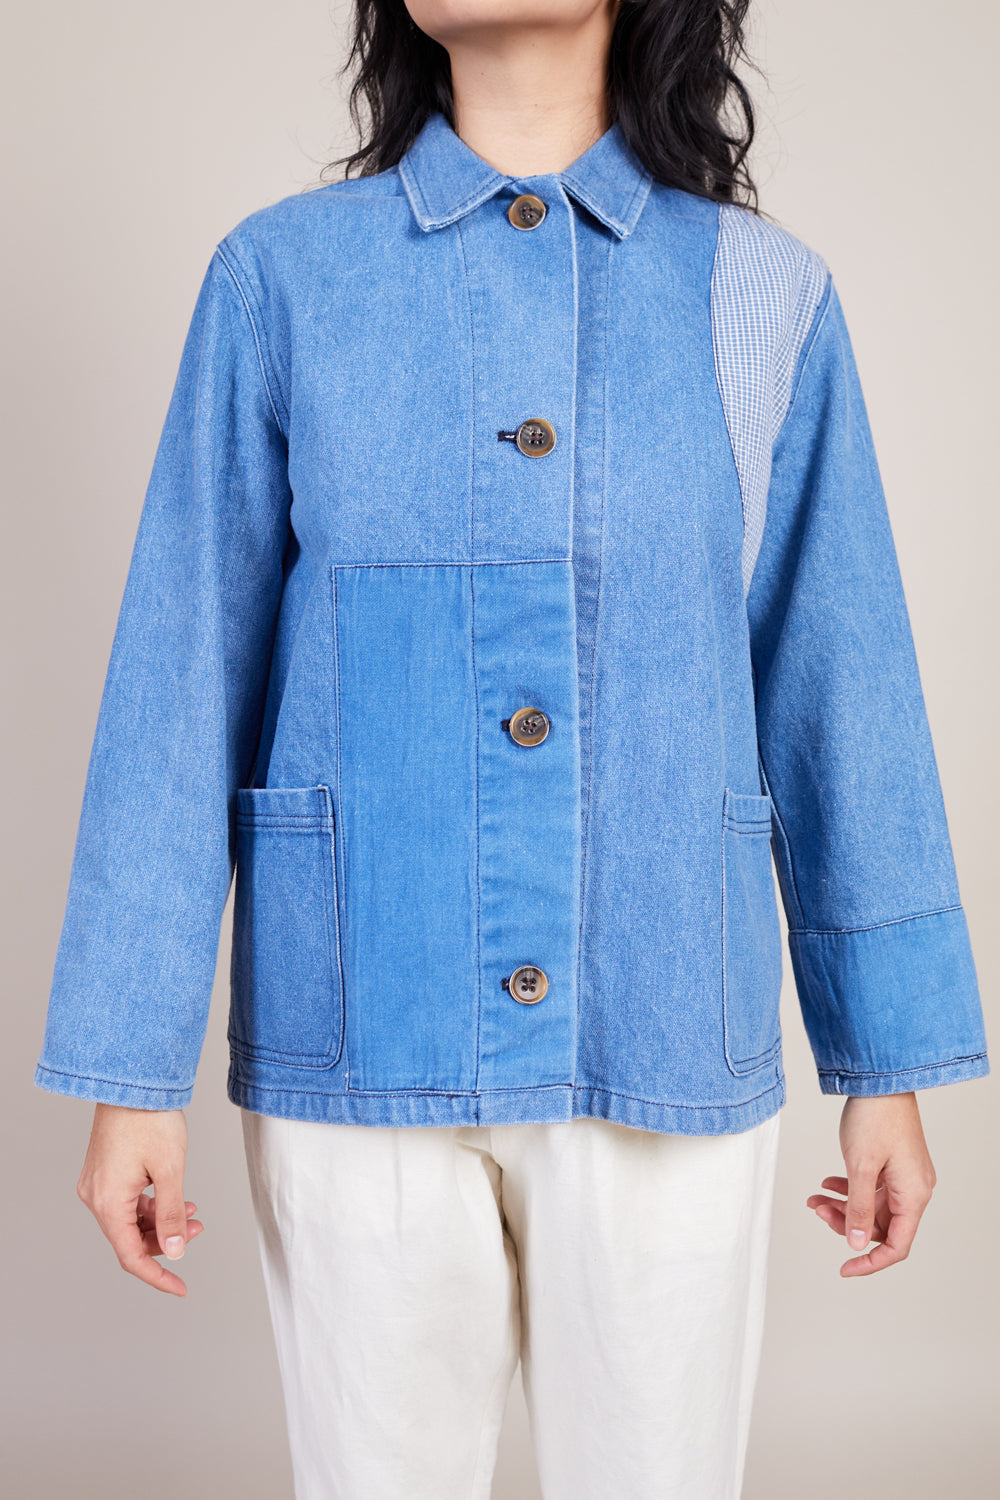 Caron Callahan Krasner Jacket in Denim - Vert & Vogue